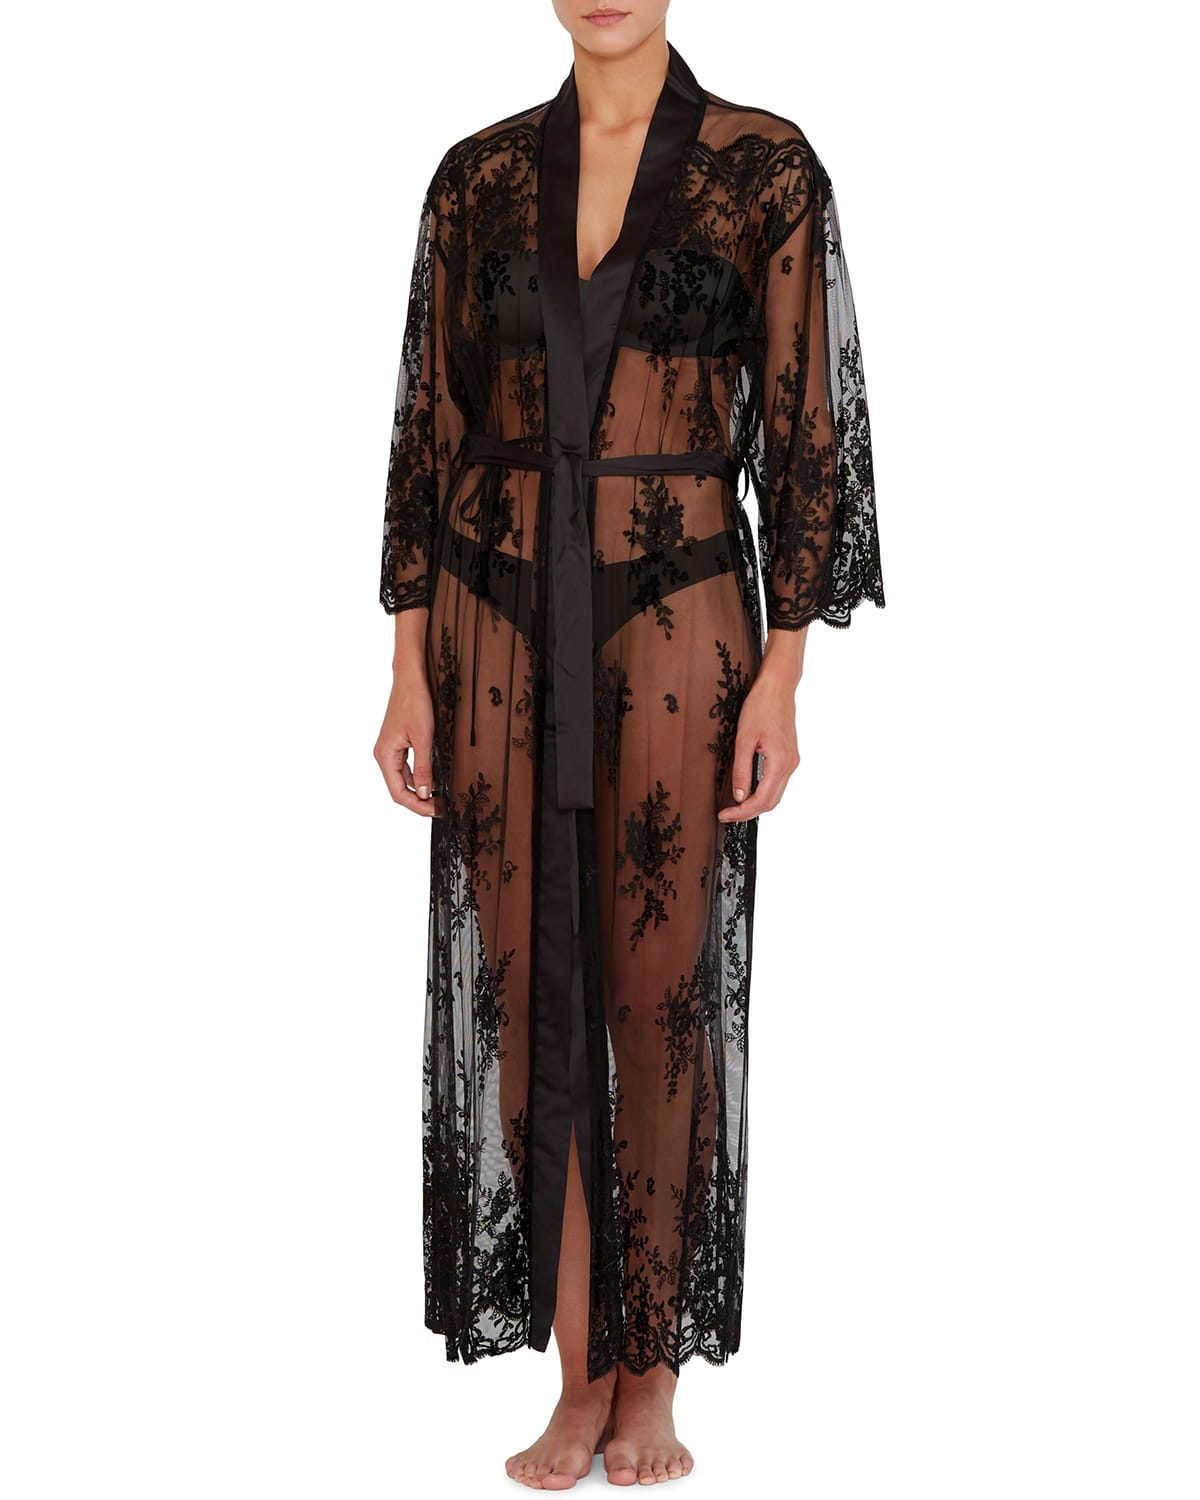 Darling Lace Robe